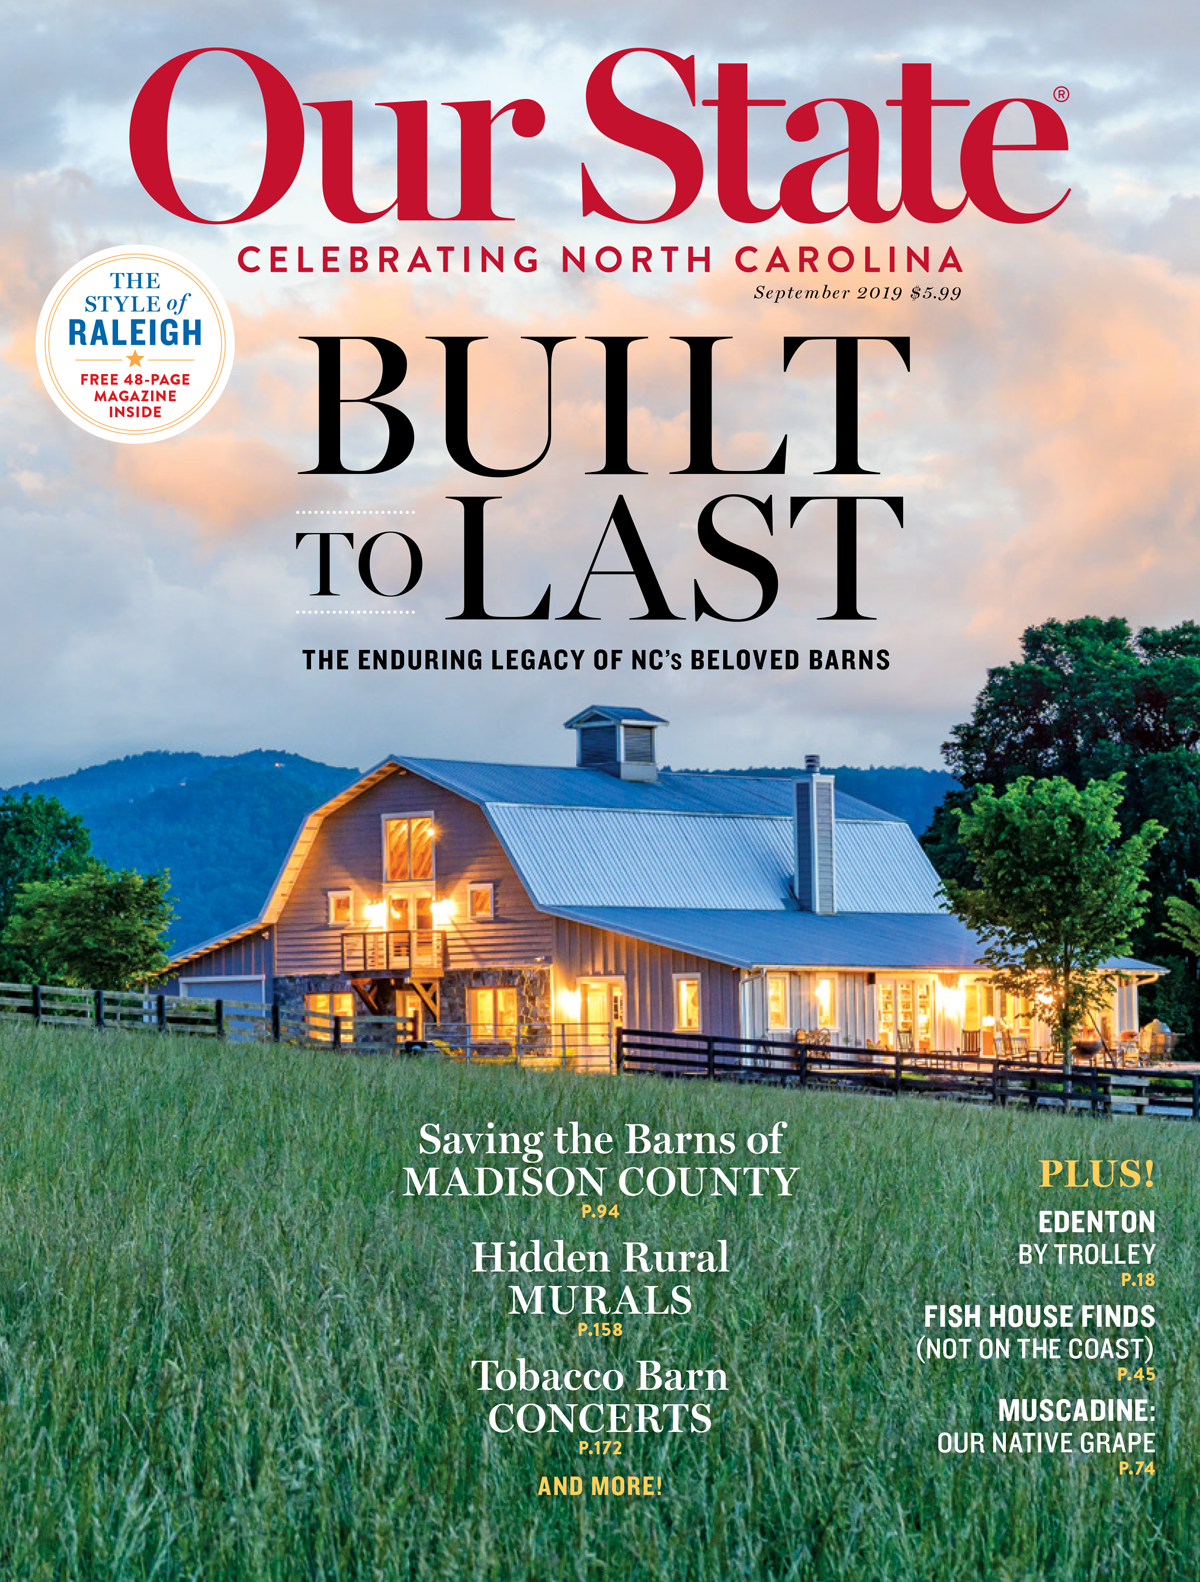 The September 2019 Issue Our State Magazine